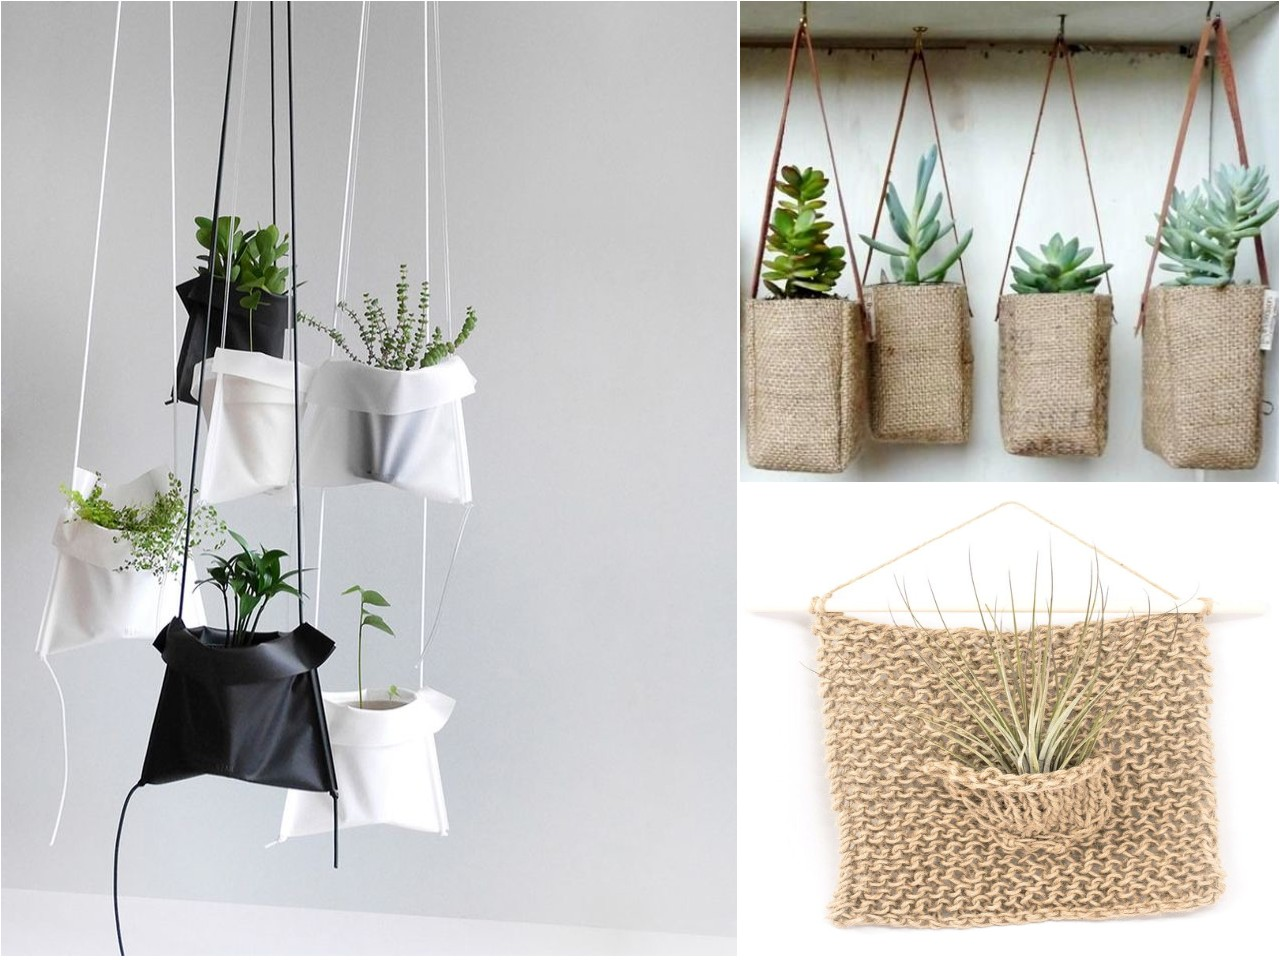 10 ideas de decoraci n con plantas colgantes for Todo ideas originales para decorar